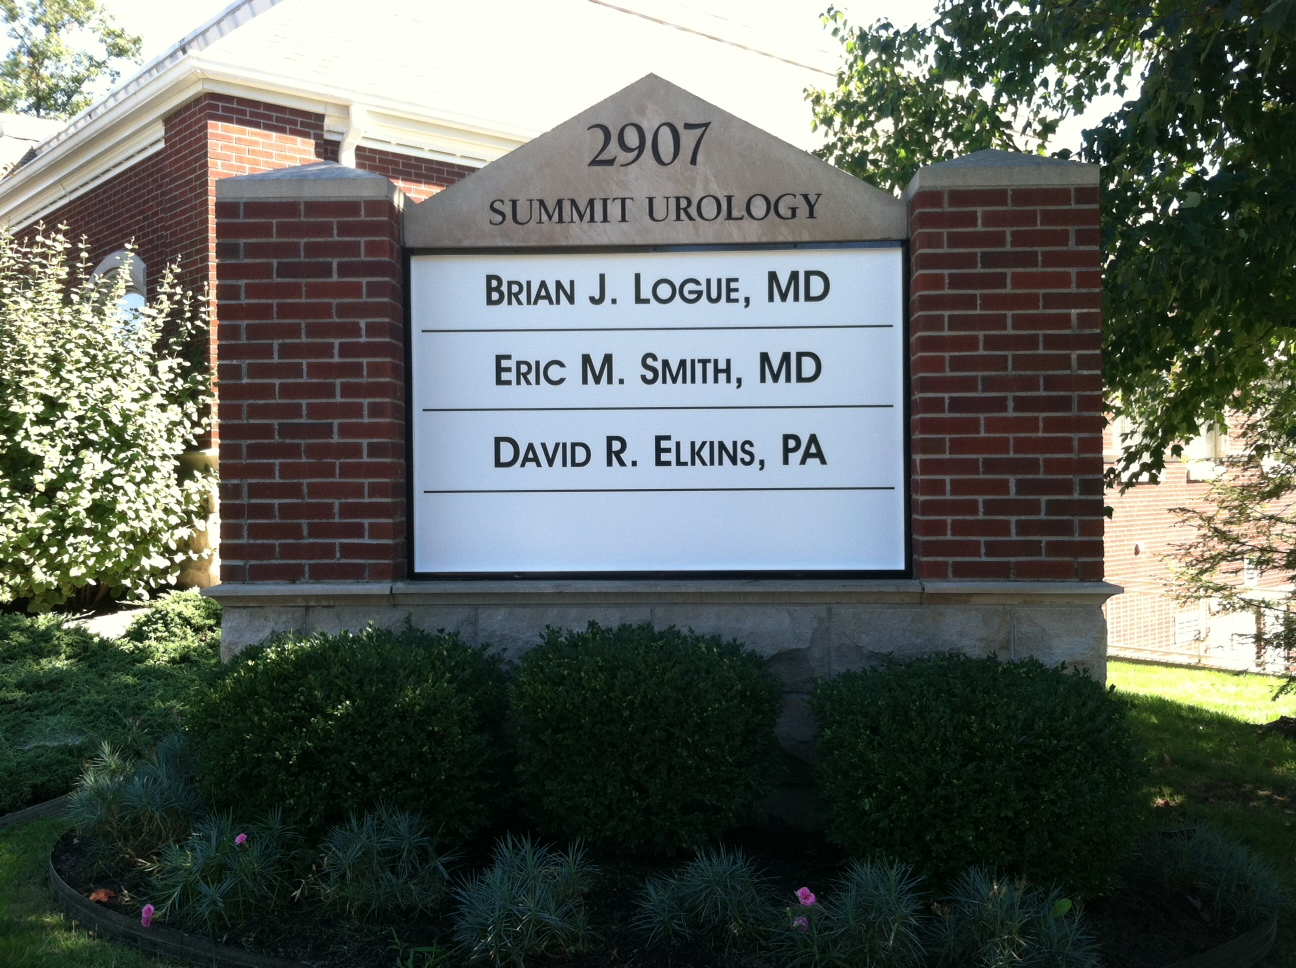 monument-signs-summit-urology